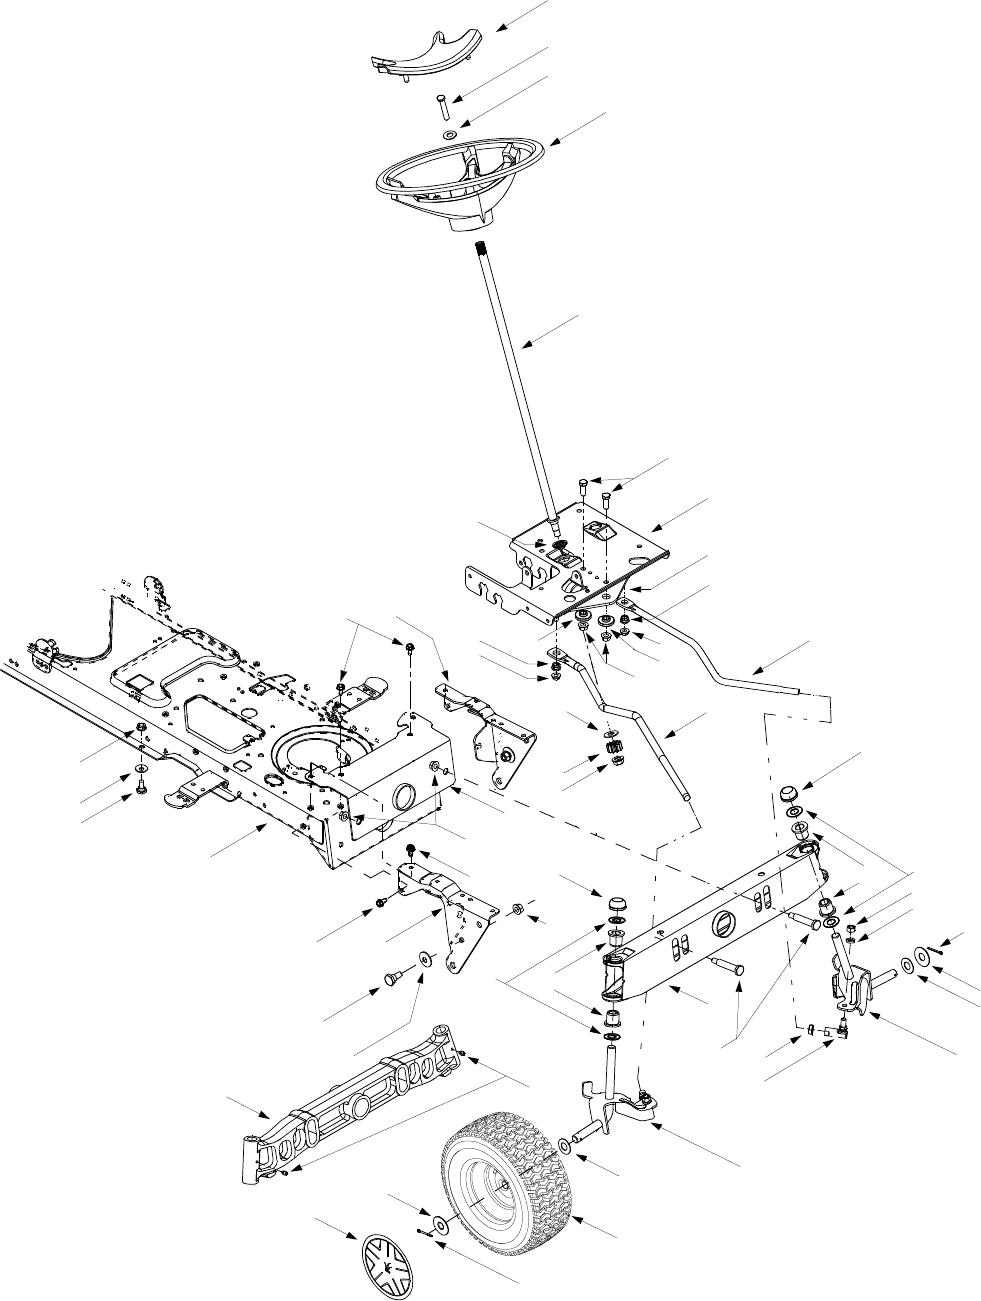 Page 30 of Yard-Man Lawn Mower 247.27432 User Guide